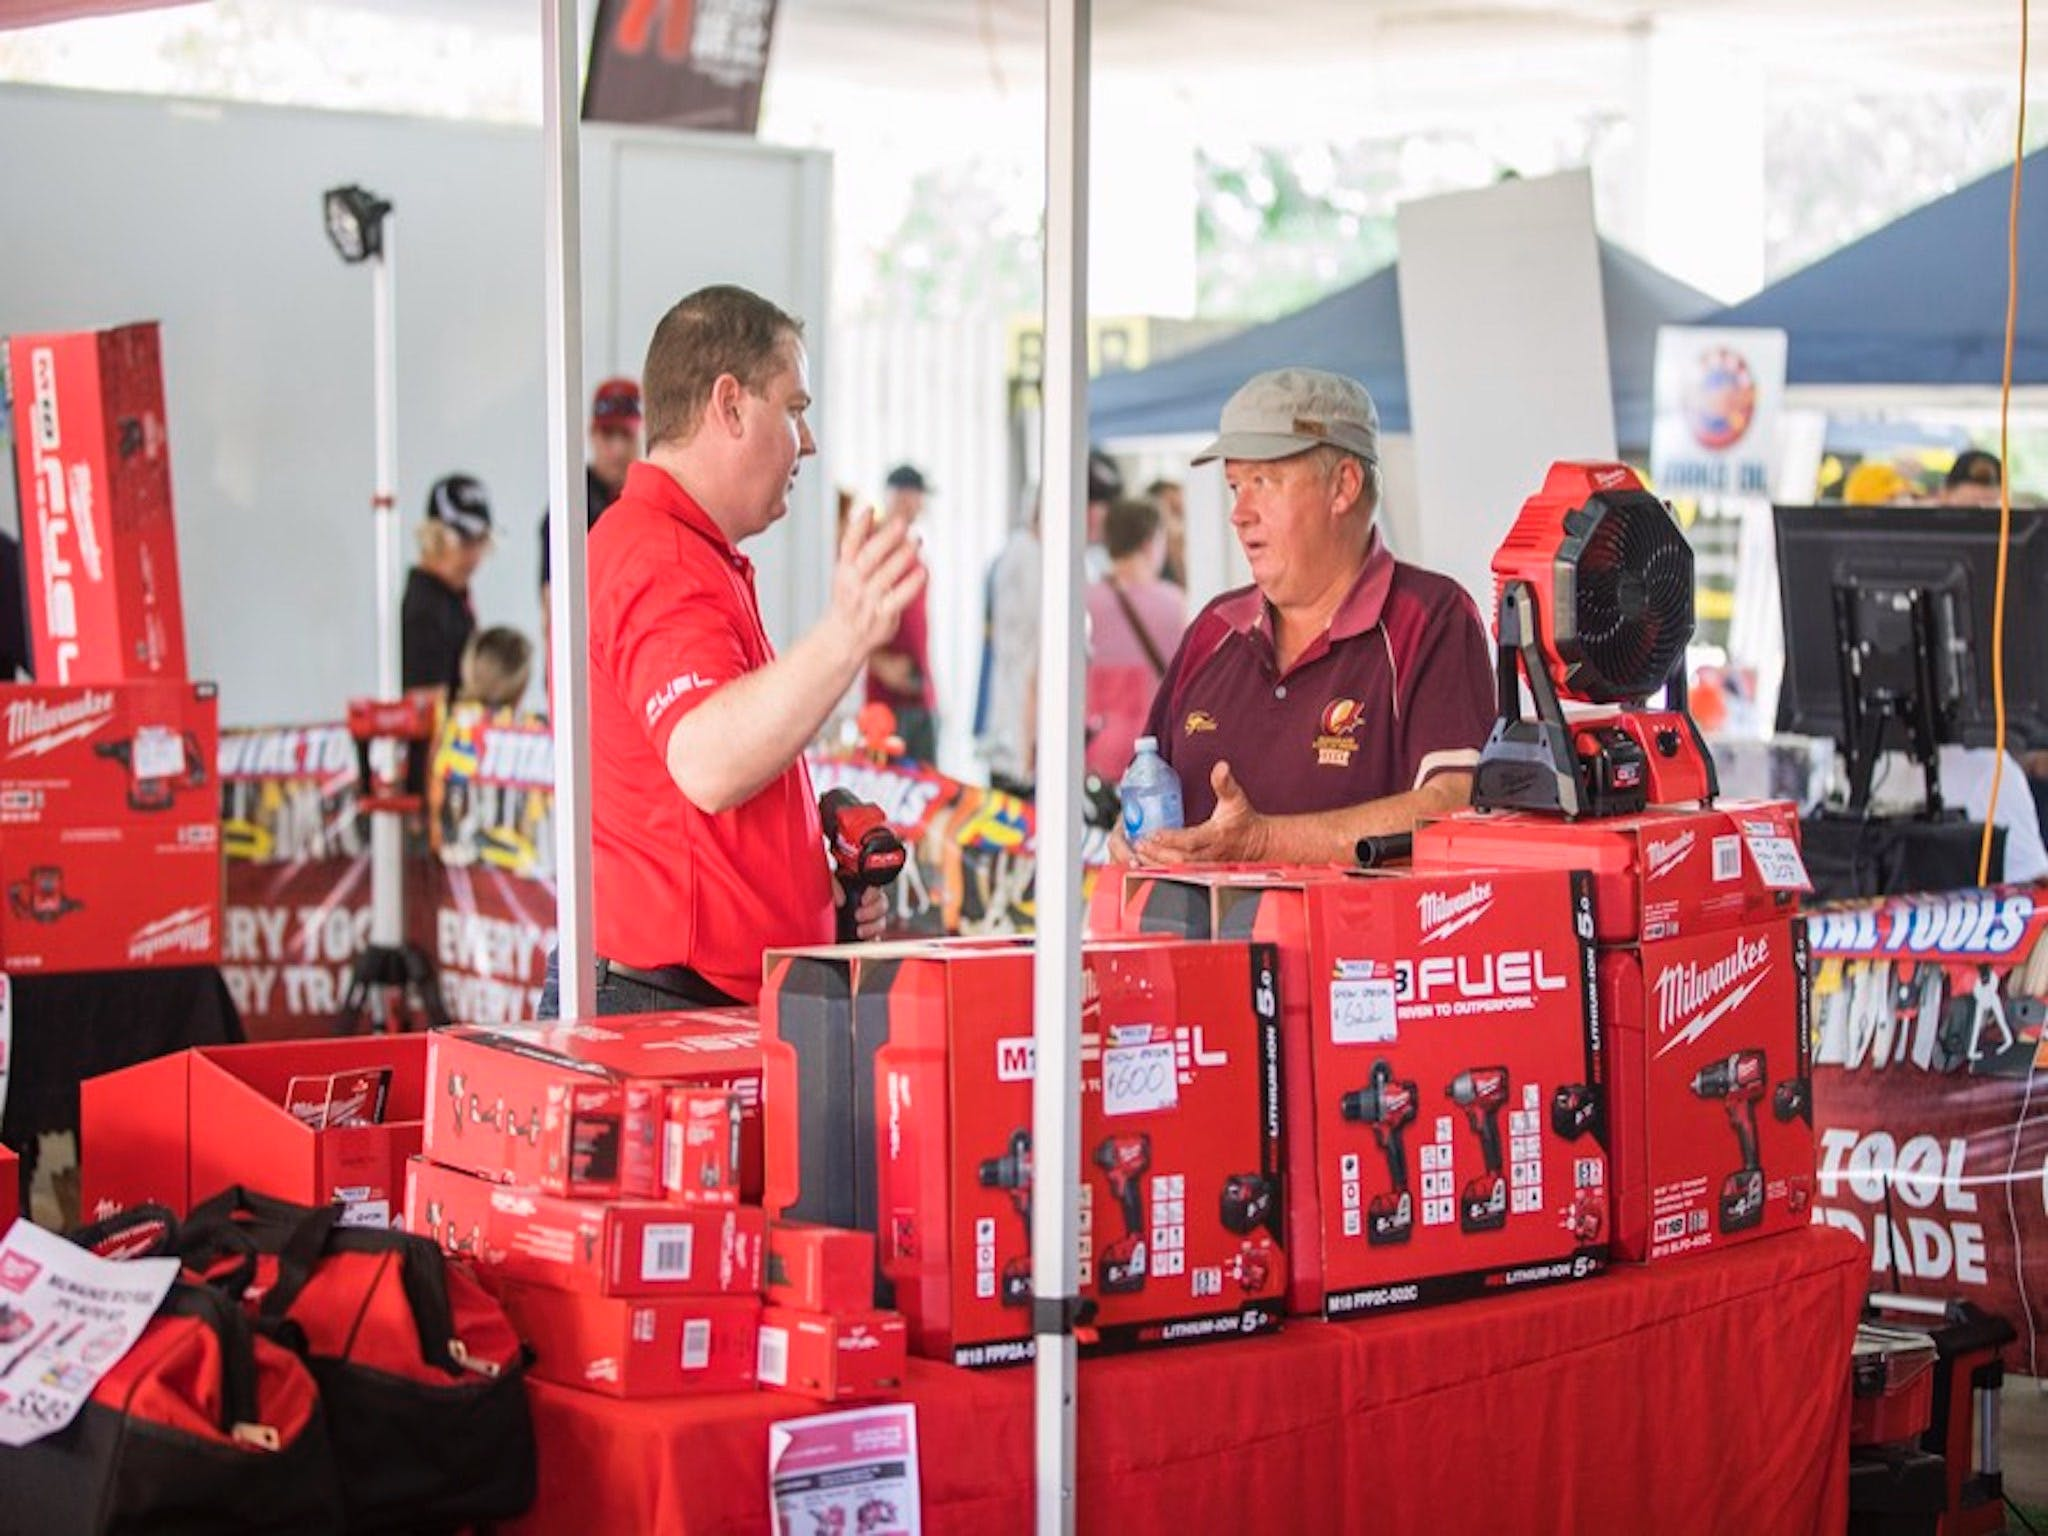 Mackay Weekend Warrior Expo by Big Boy Toys - Tourism Gold Coast